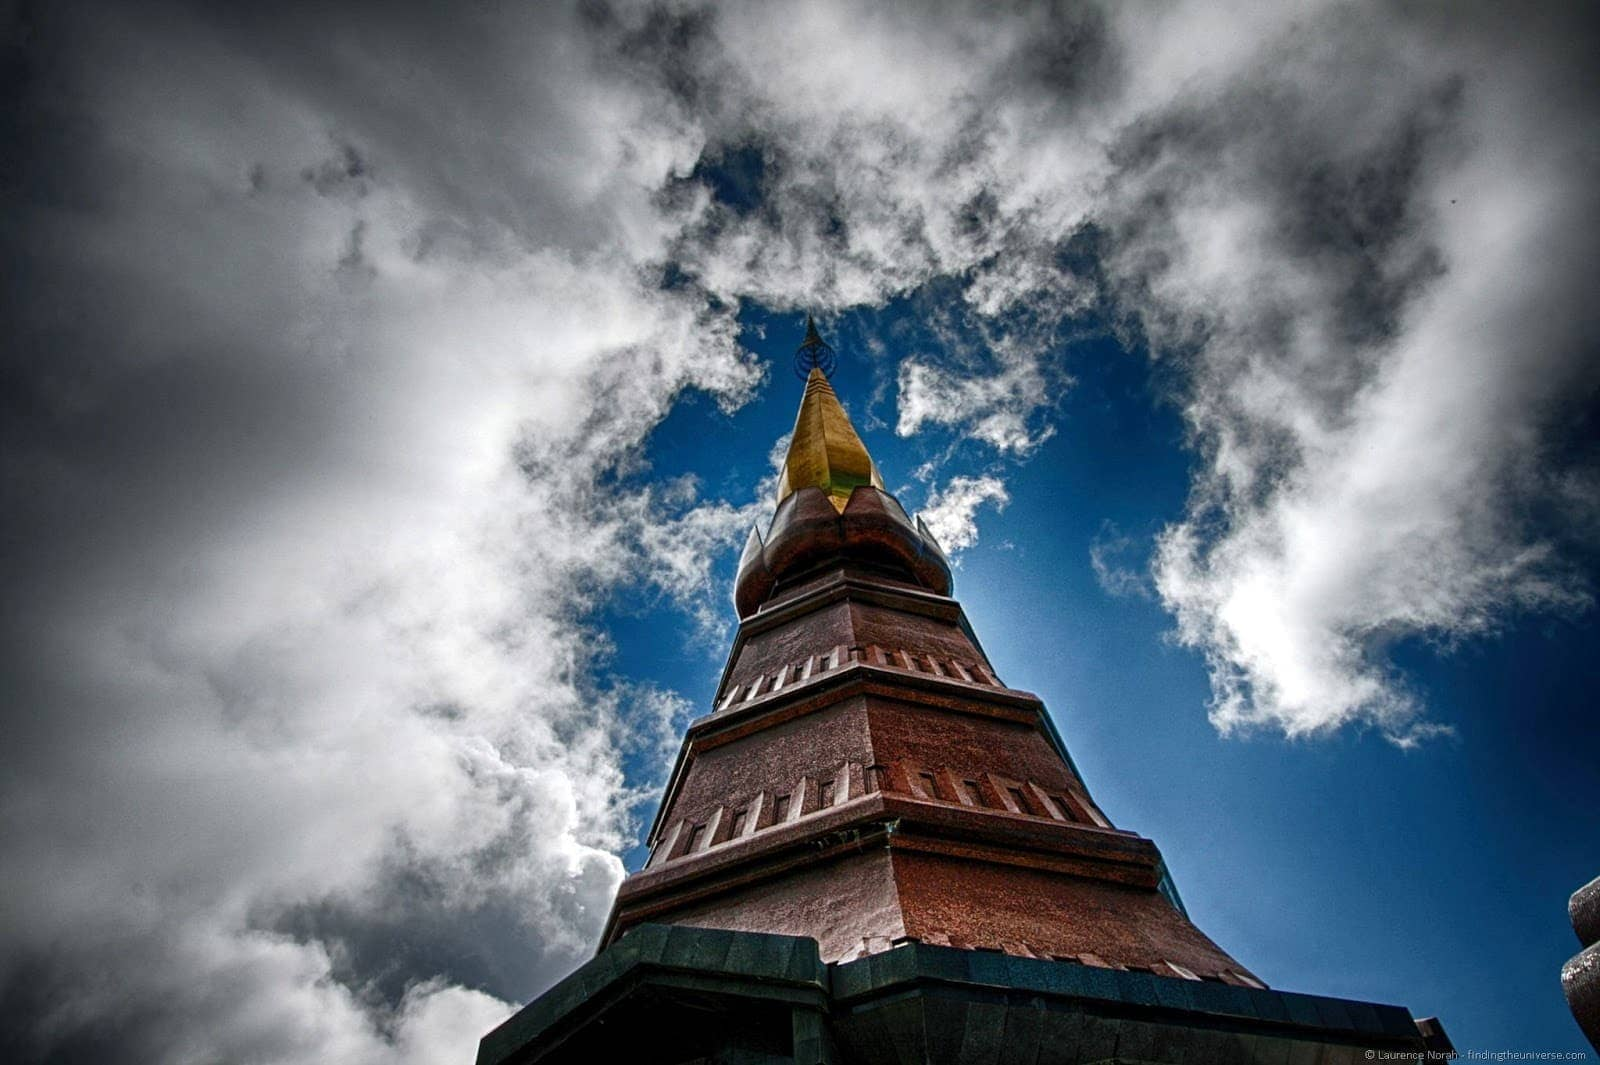 Royal Pagoda Doi Inthanon Thailand close up